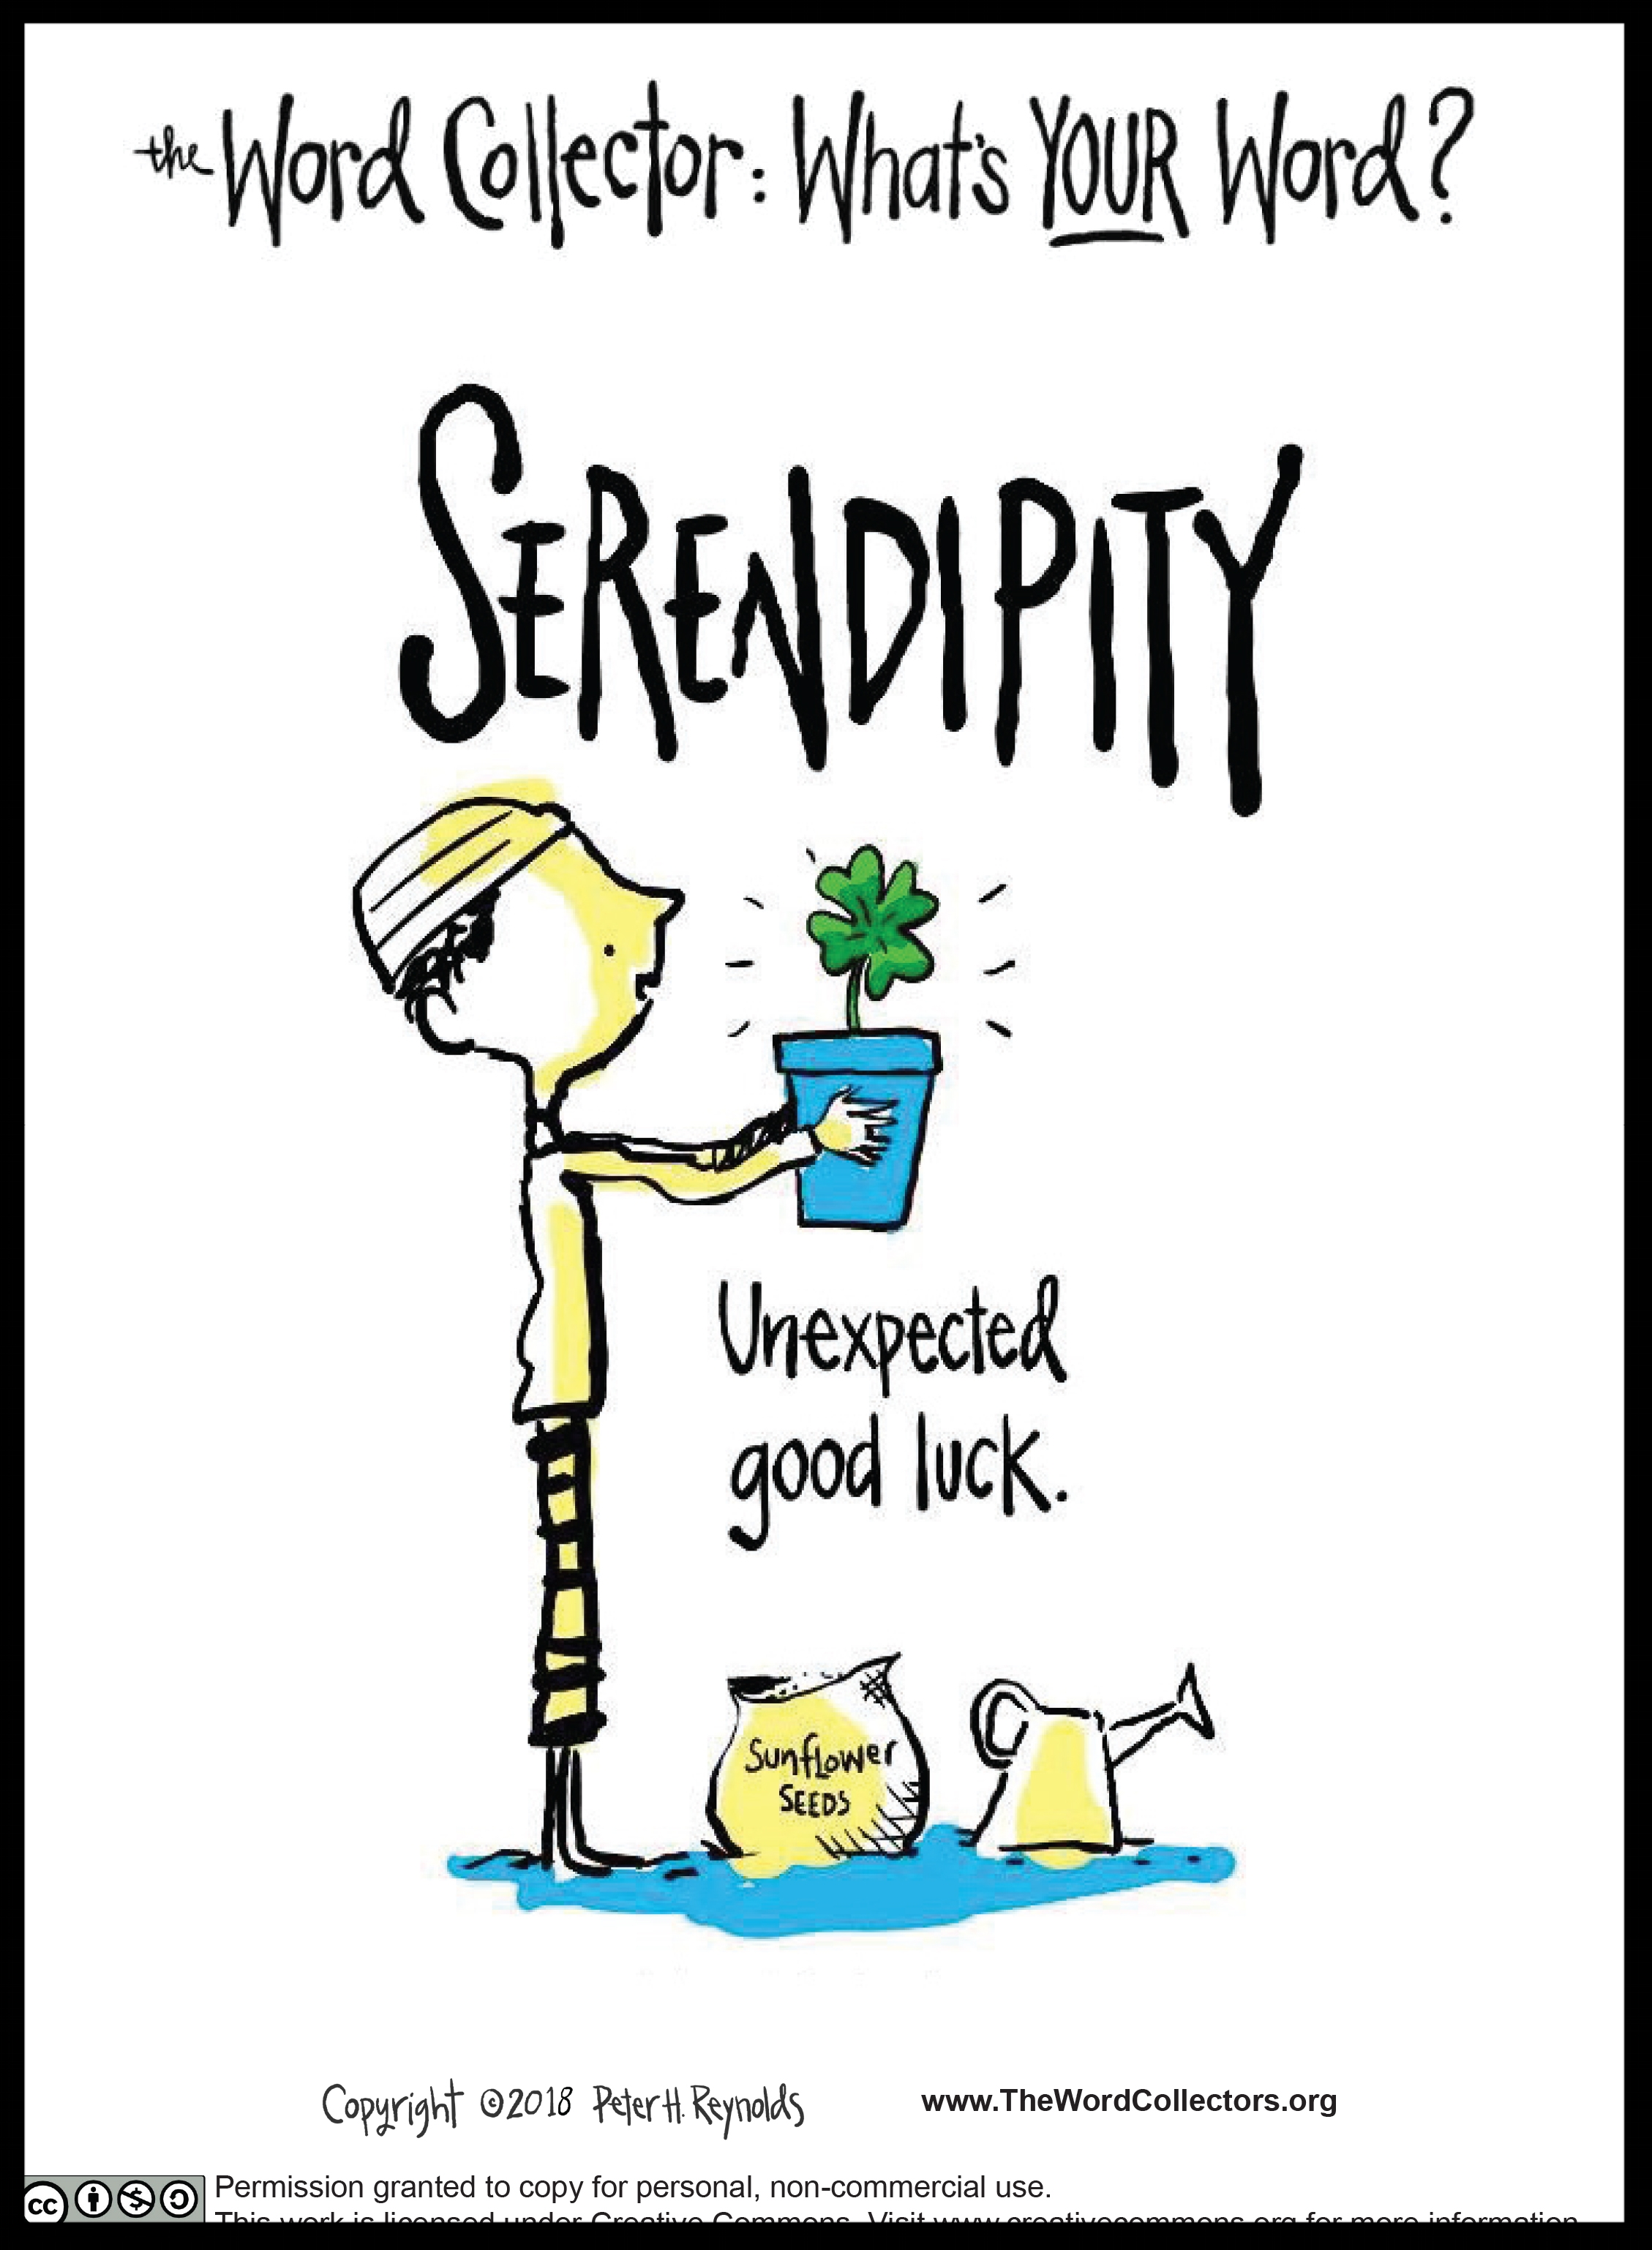 WordCollectorPoster_Serendipity.jpg